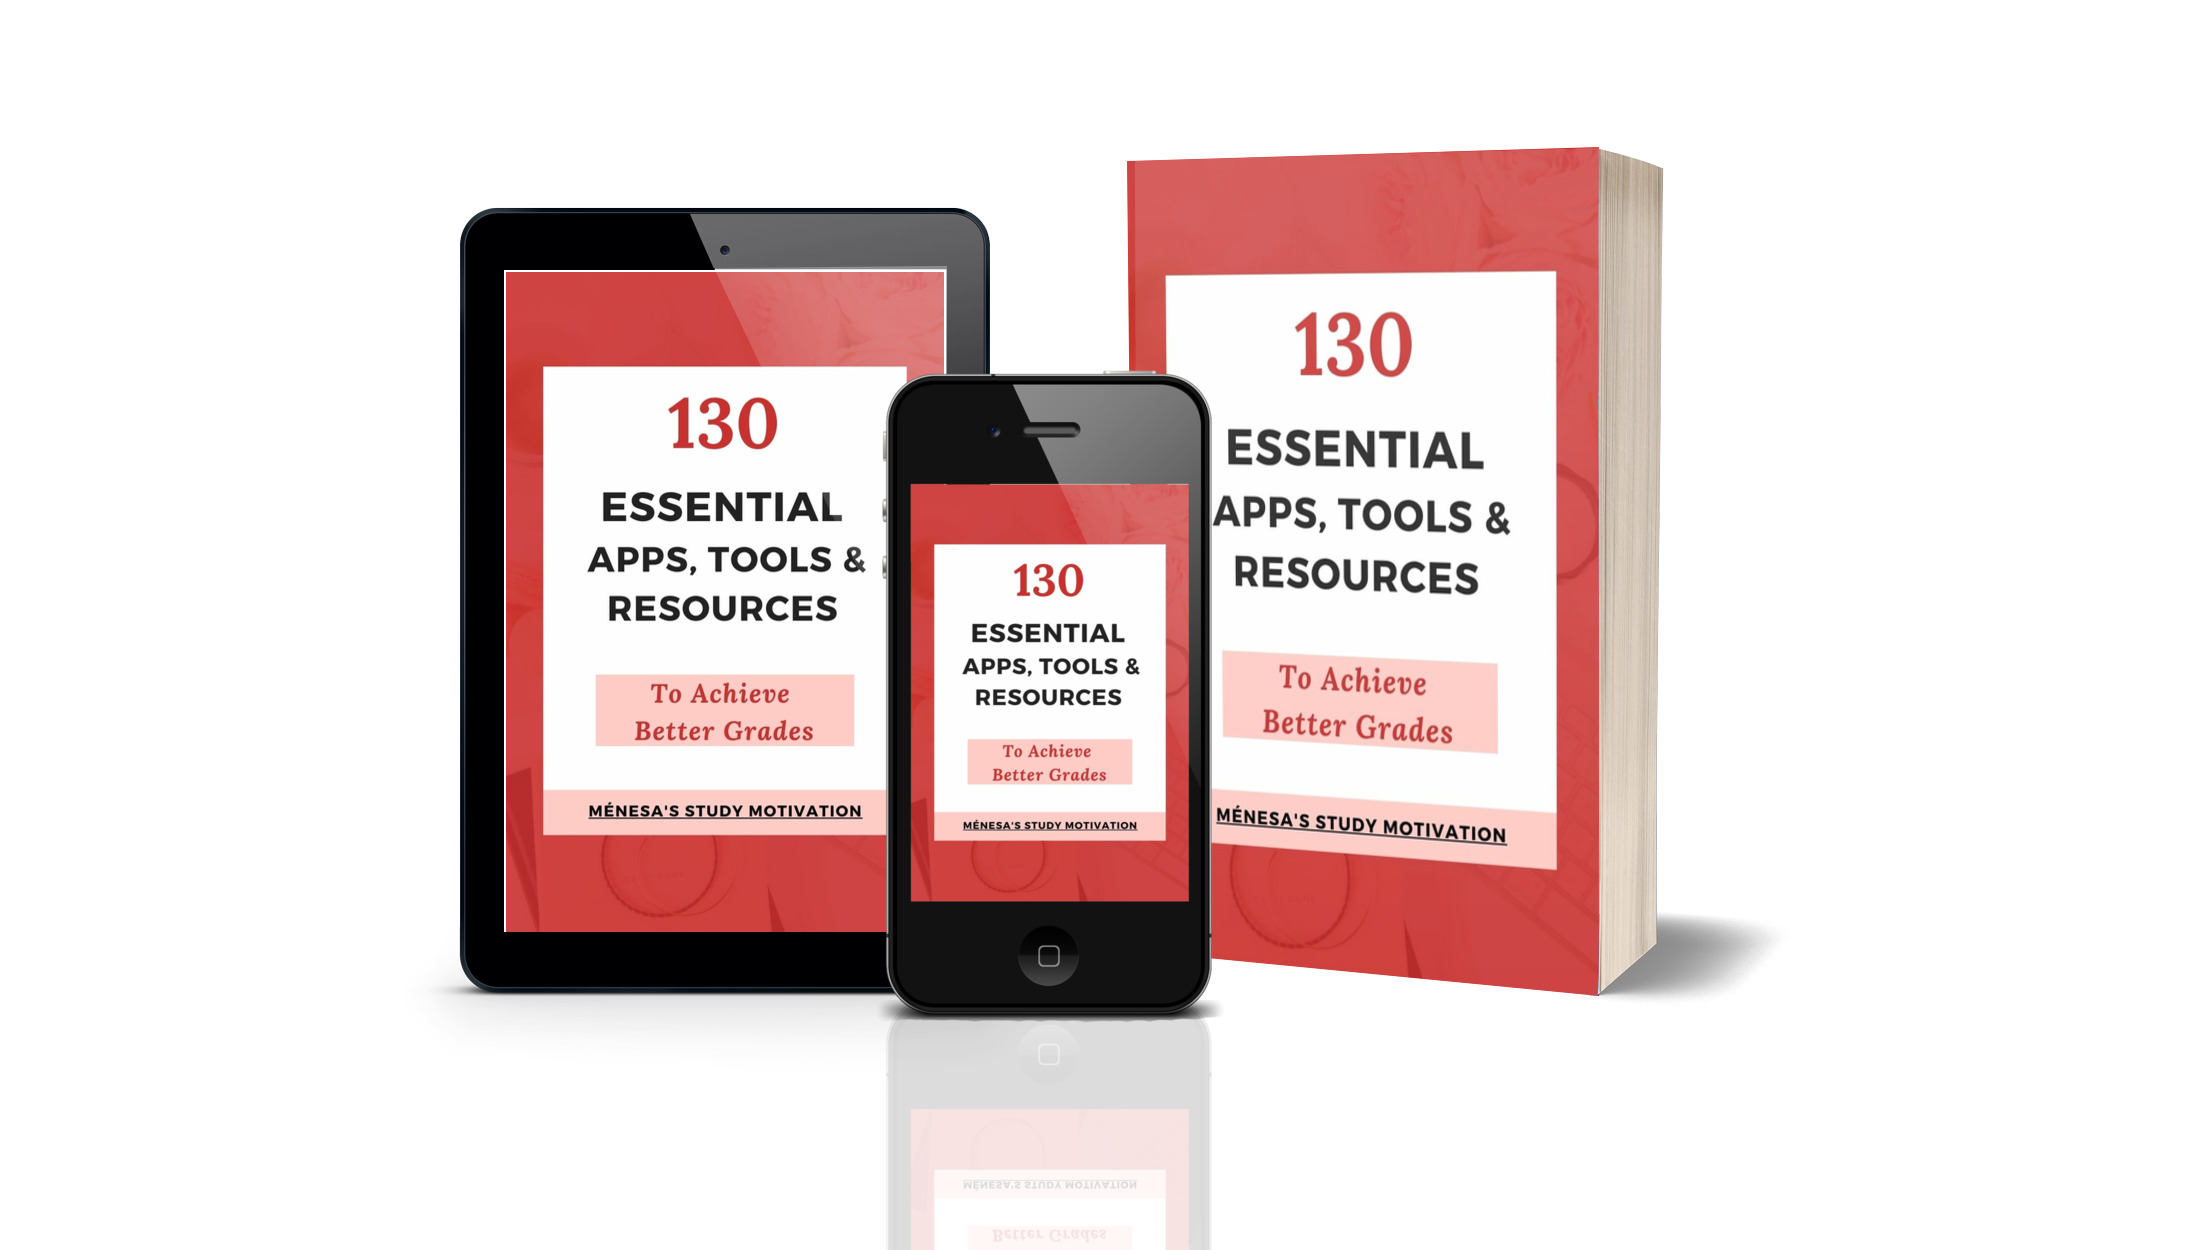 130 Essential Apps & Resources to Achieve Better Grades